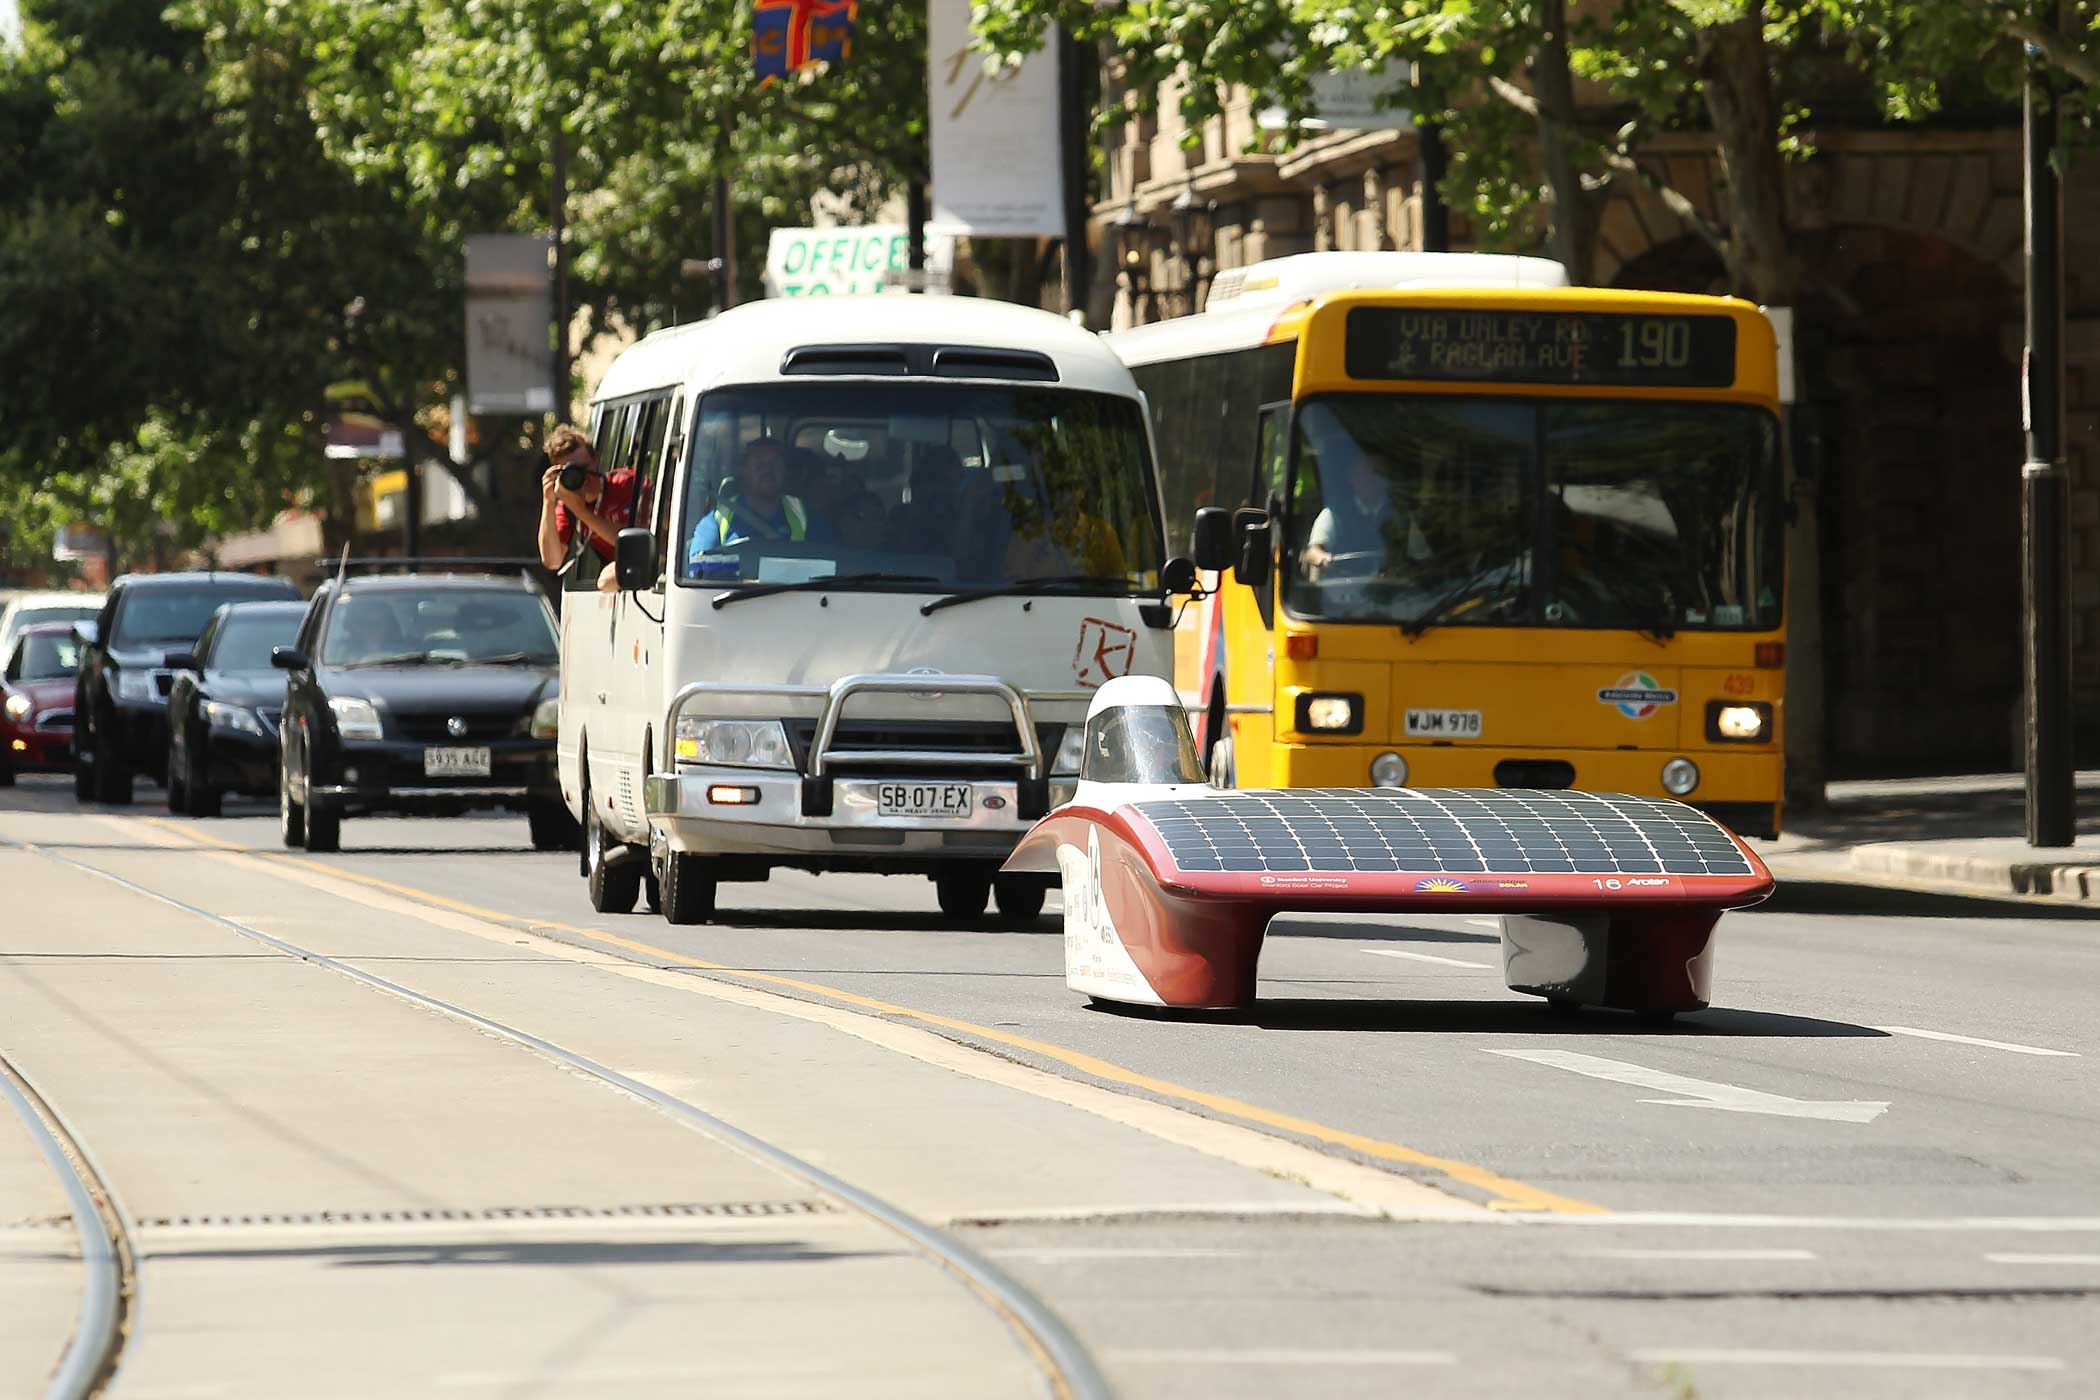 Members of the Stanford Solar Car Project team approach the finish line at Victoria Square, Adelaide, Australia on Oct. 22, 2015.